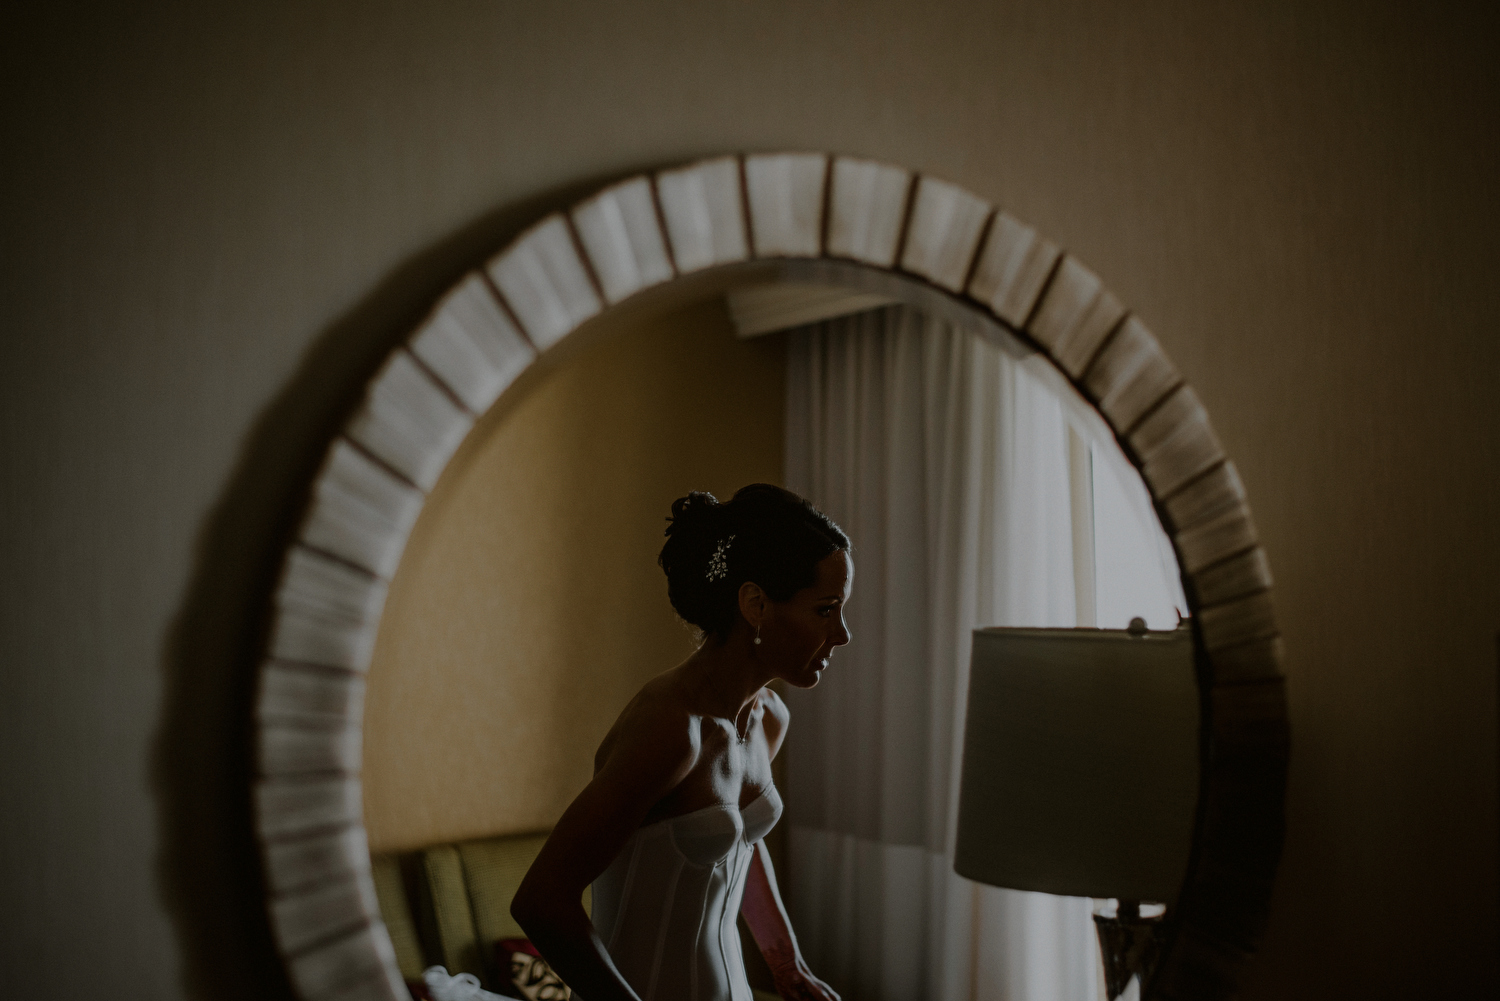 bride getting ready in reflection of mirror of hotel room